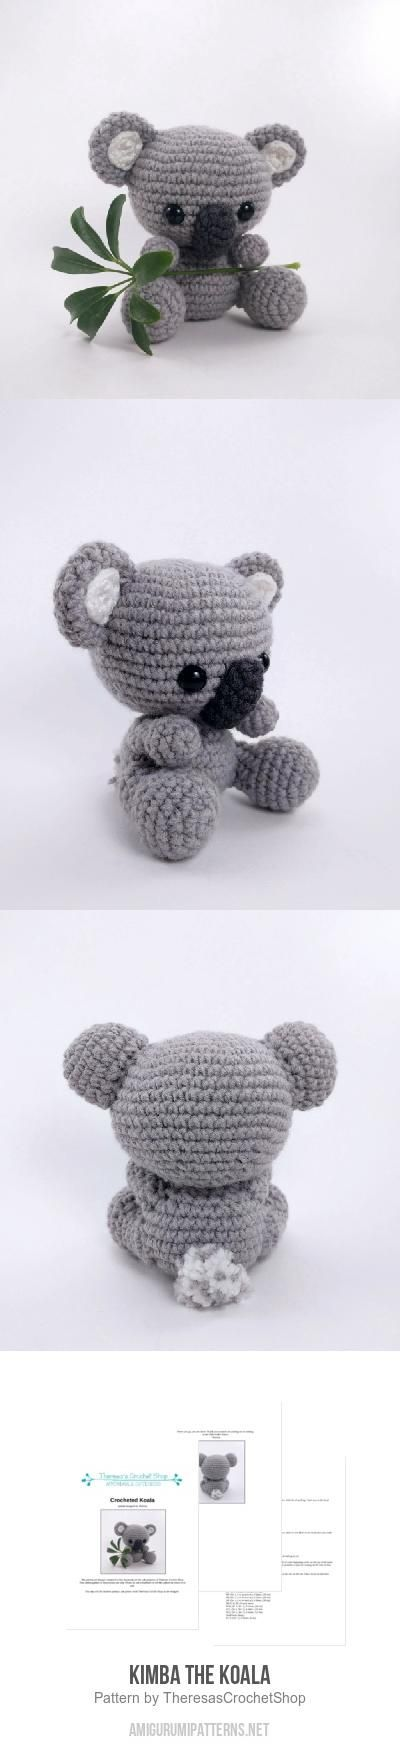 Kimba The Koala Amigurumi Pattern More | Amigurumi | Pinterest ...